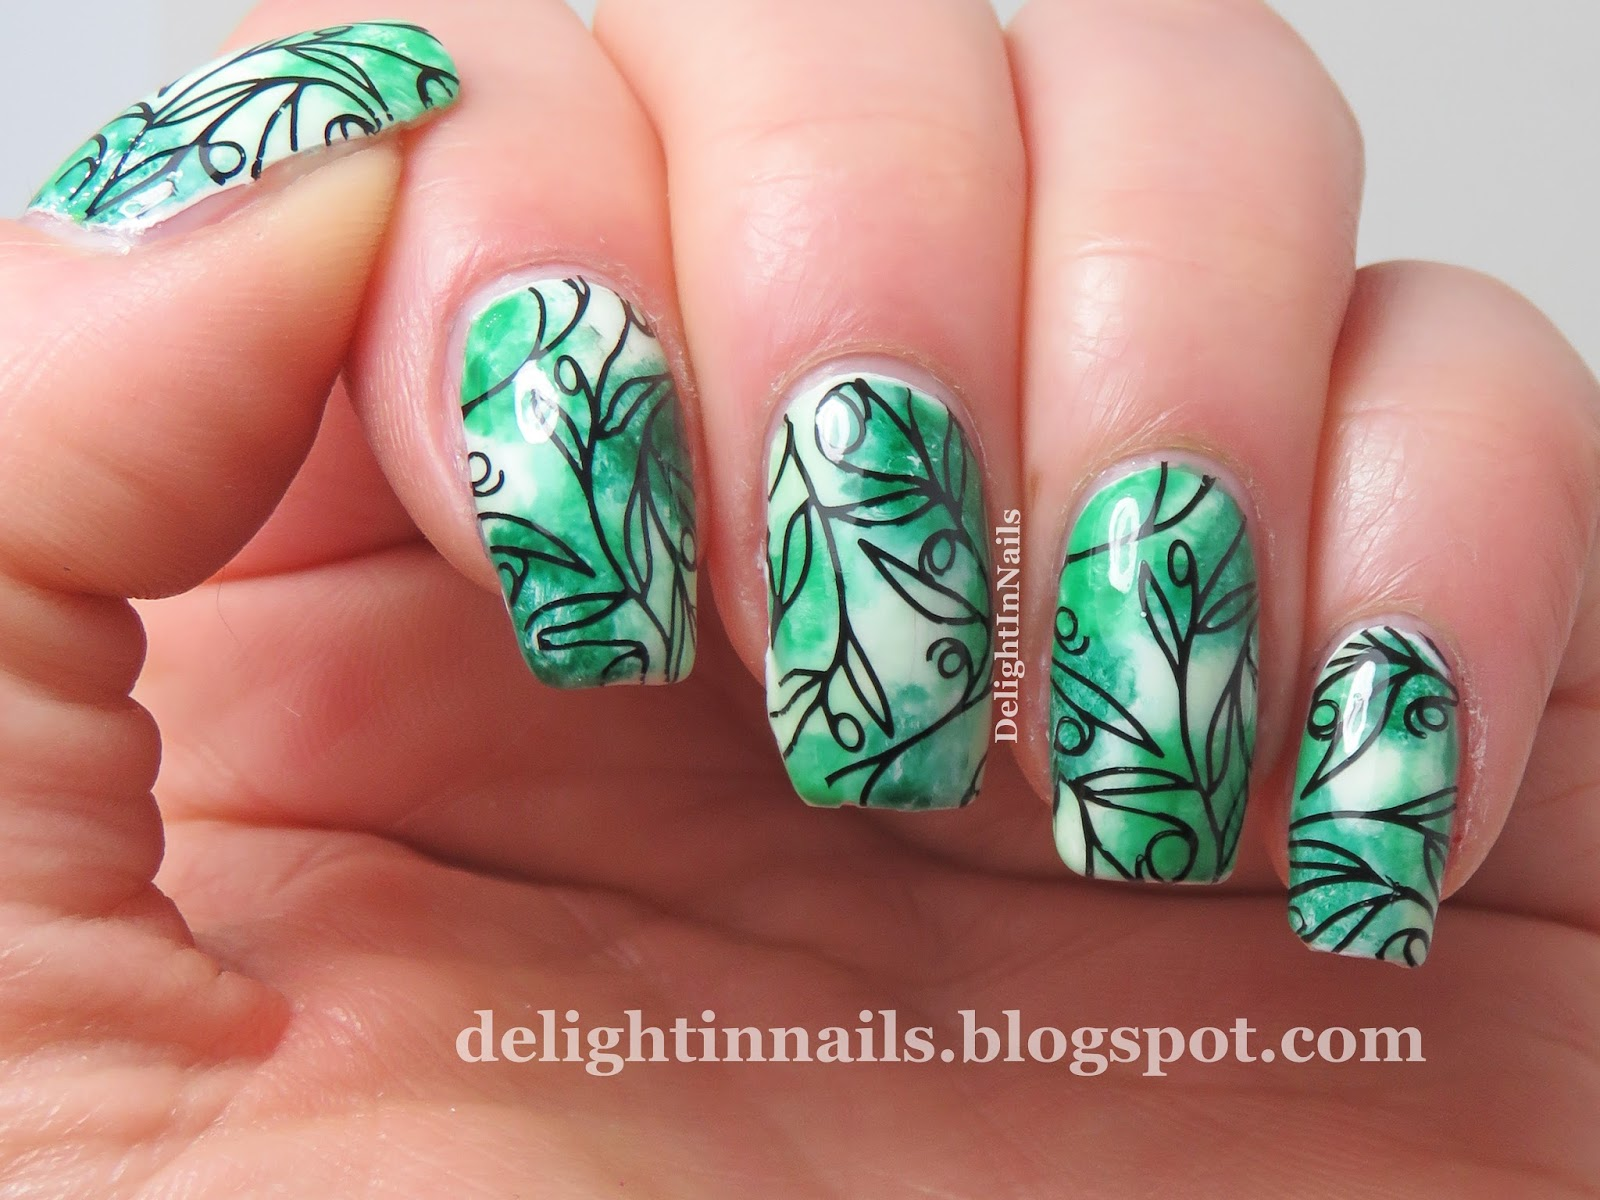 Delight In Nails 40 Great Nail Art Ideas 3 Shades Of Green